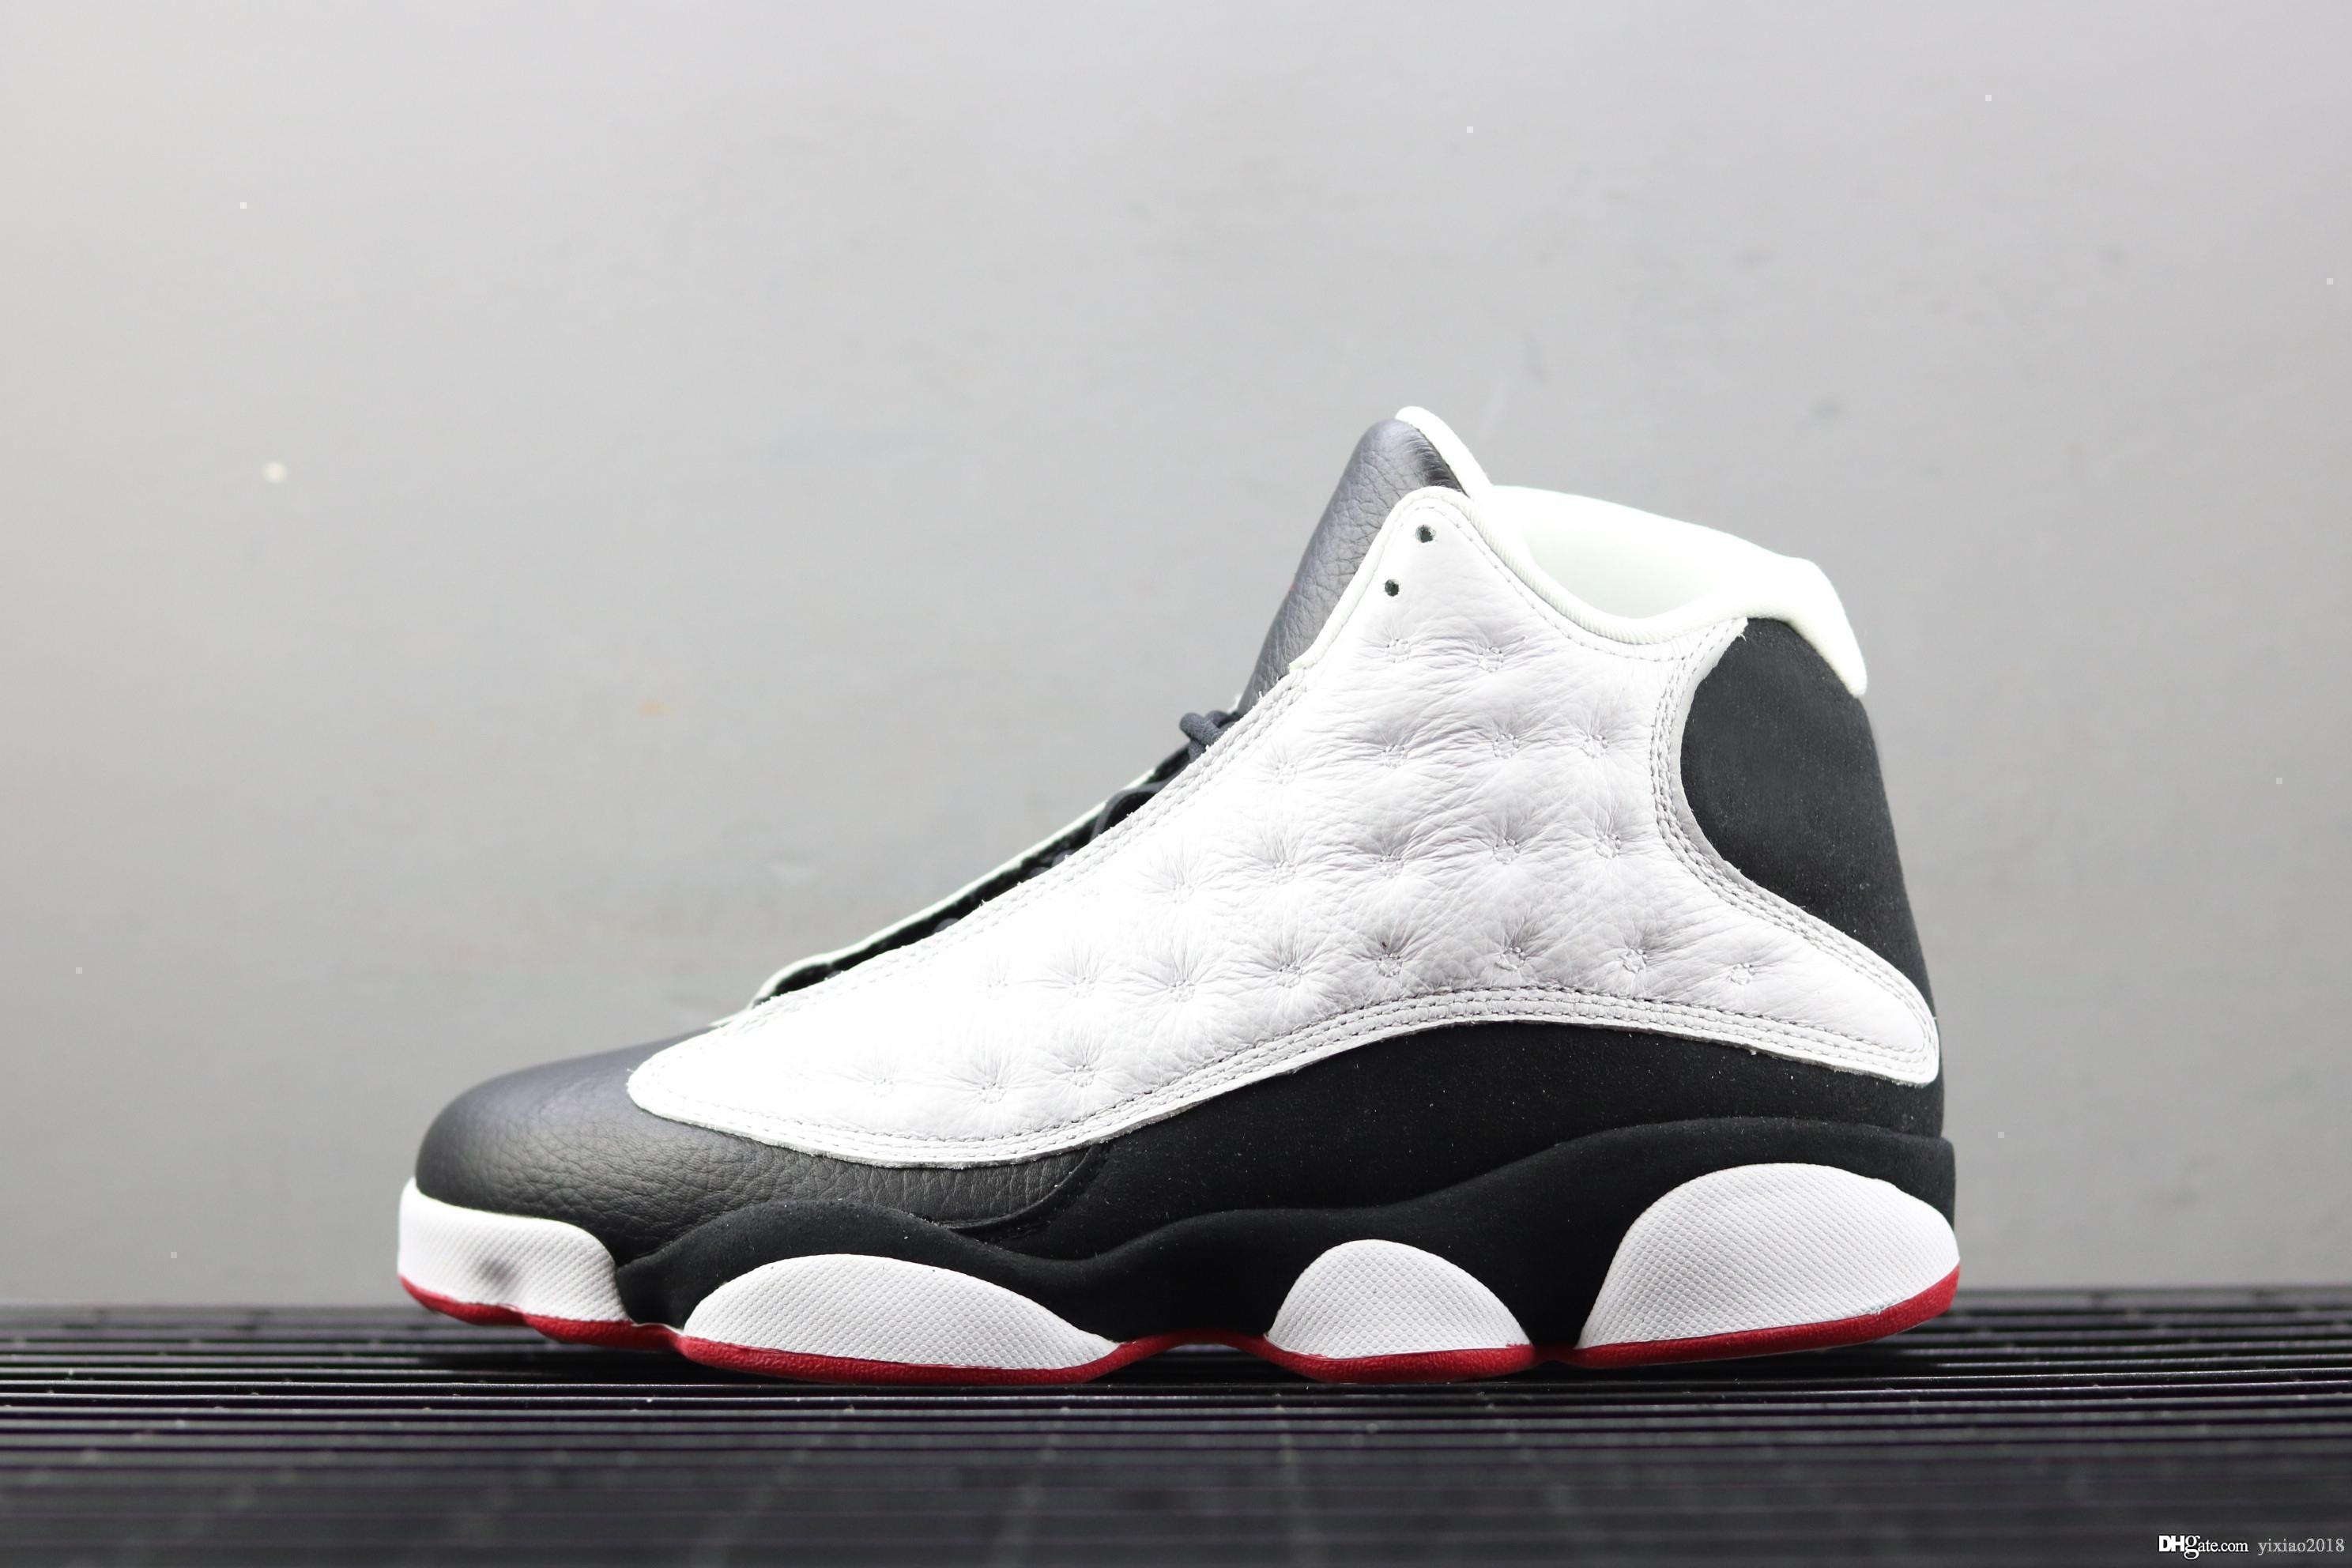 new product f1739 9e6a6 He got game 13 Real Carbon Fiber Black 13s White Retro Men Basketball Shoes  Women Trainers 2019 Casual Shoes Sneakers With Box